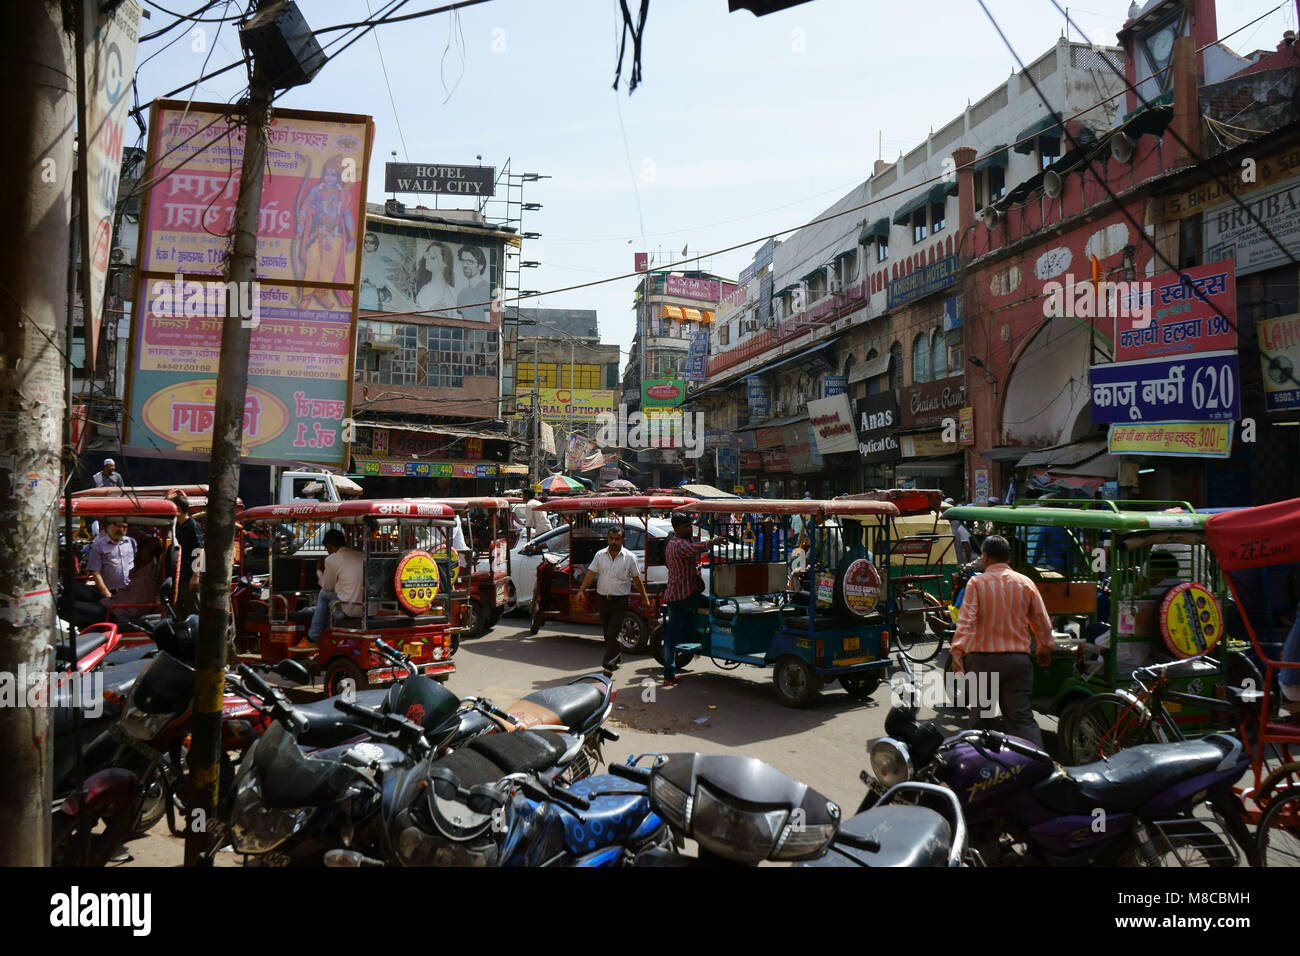 Townsquare filled with parked cars, rikshas, motorcycles in